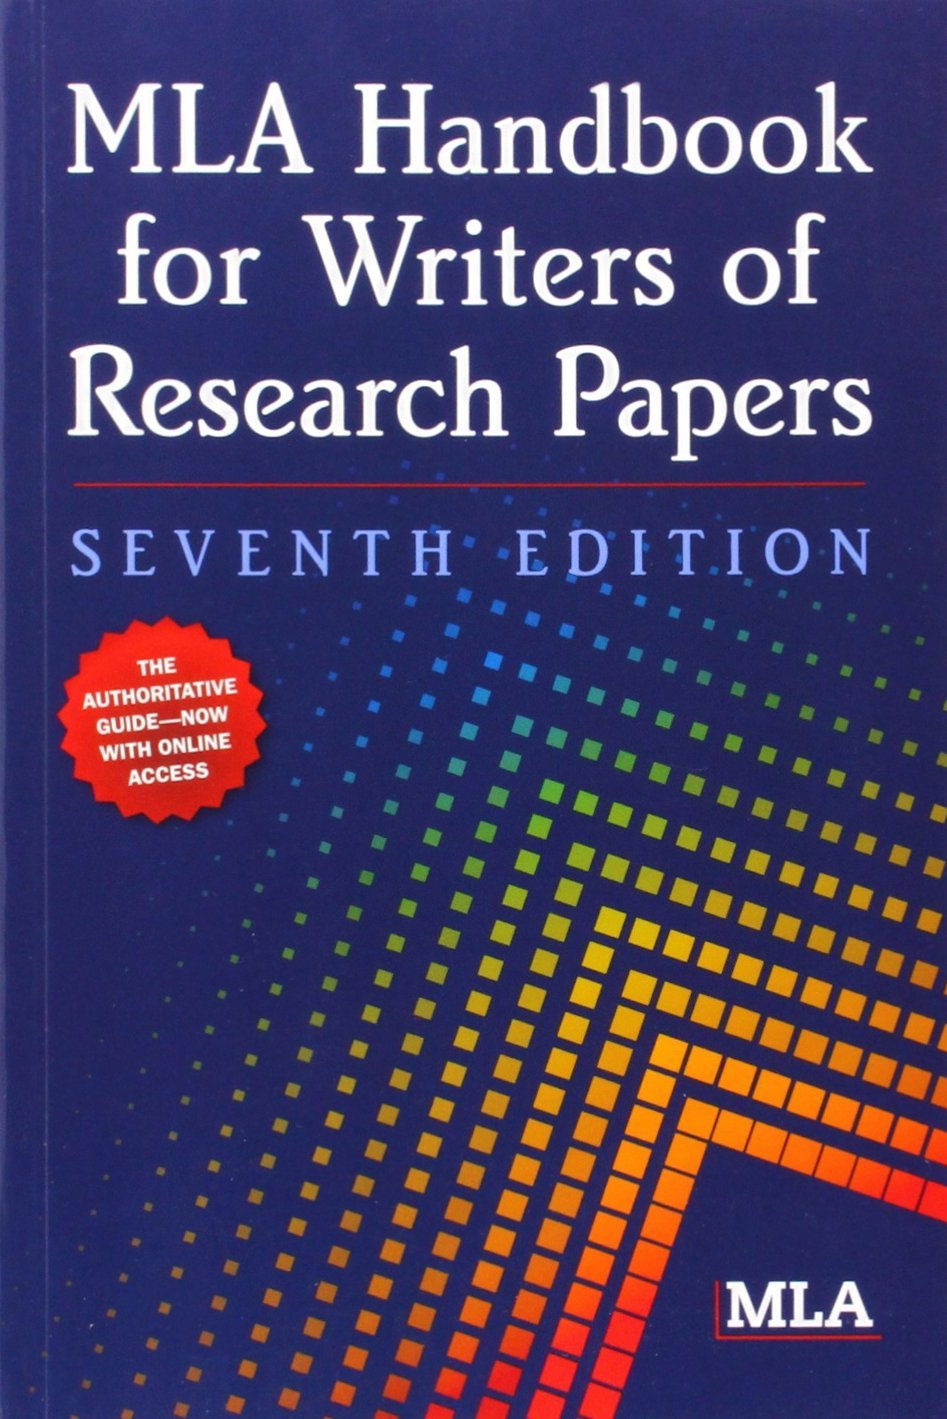 001 The Mla Handbook For Writers Of Research Papers Paper Fearsome 8th Edition 7th 2009 (8th Ed.)